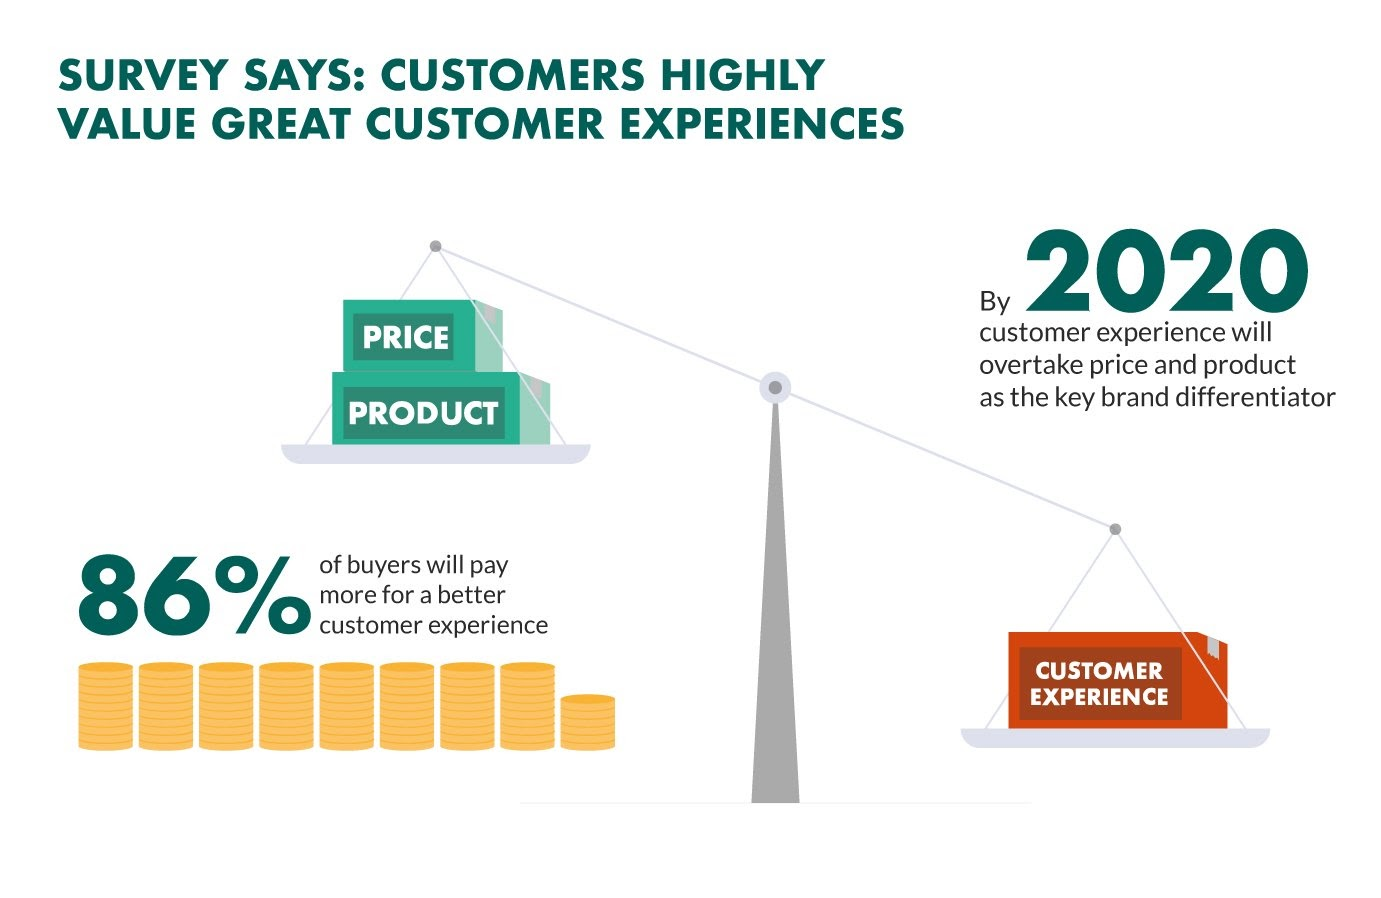 customer experience key brand differentiator